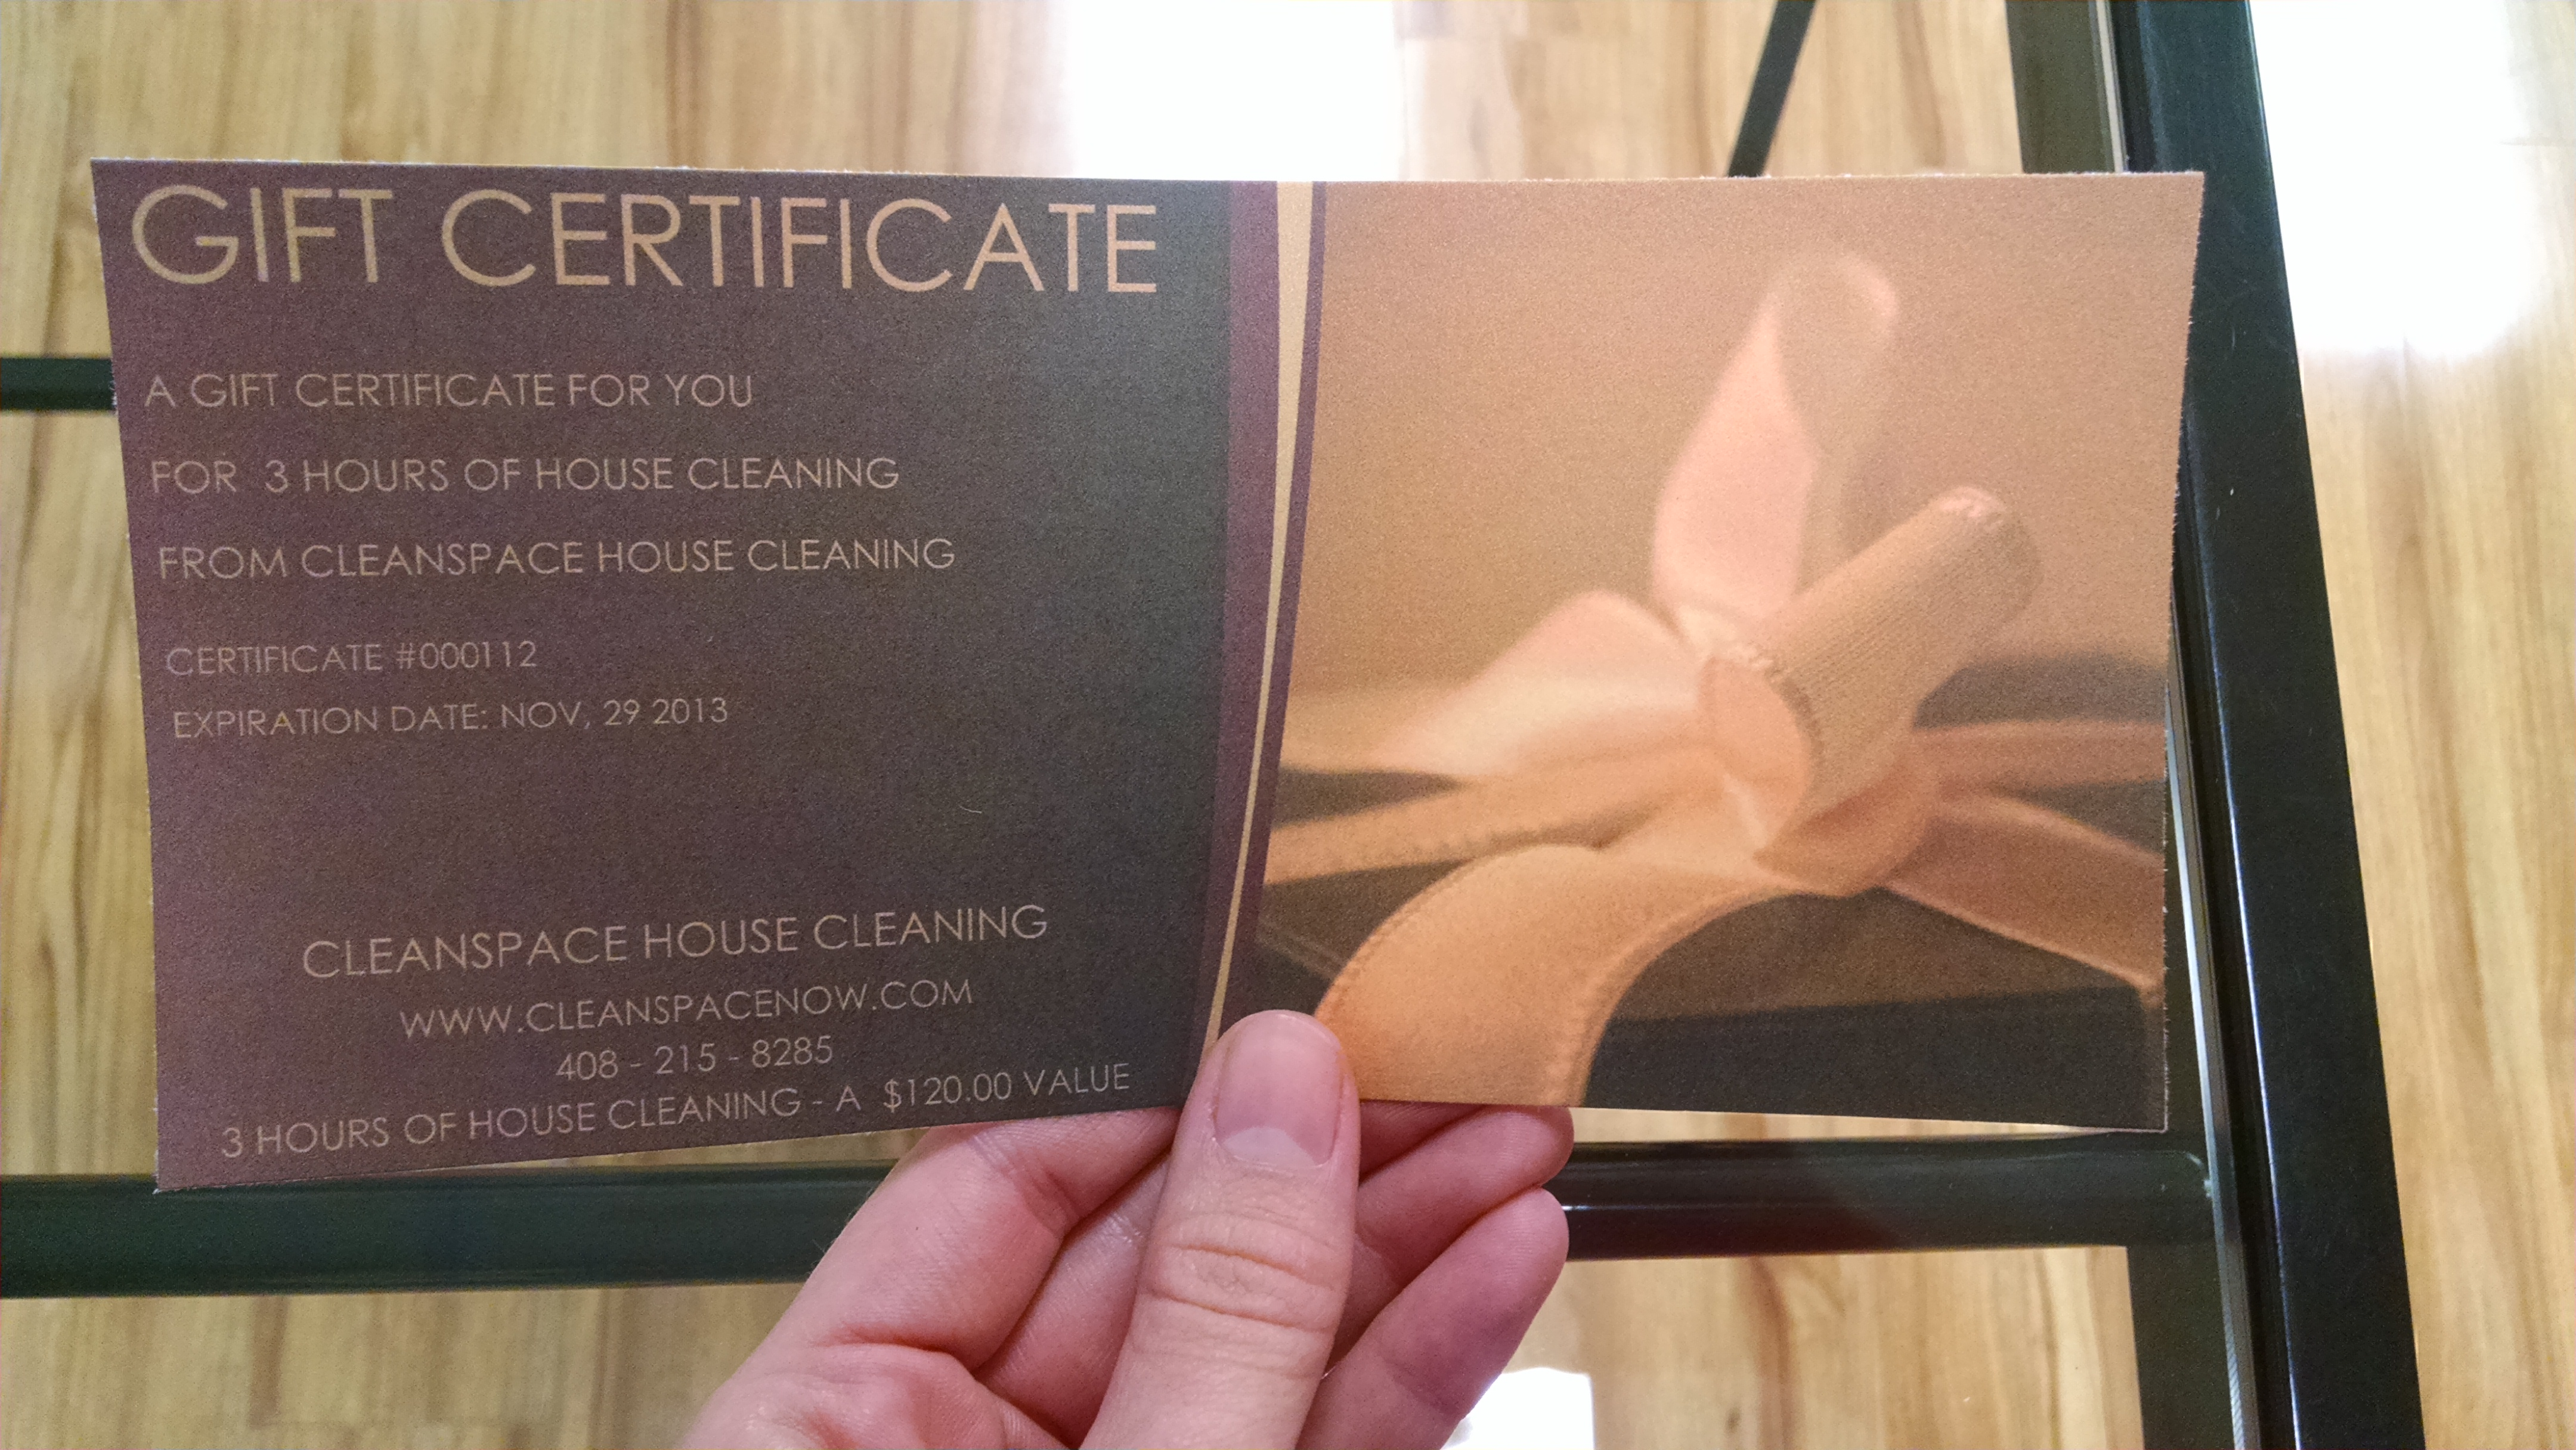 House Cleaning Gift Certificate-what it looks like.